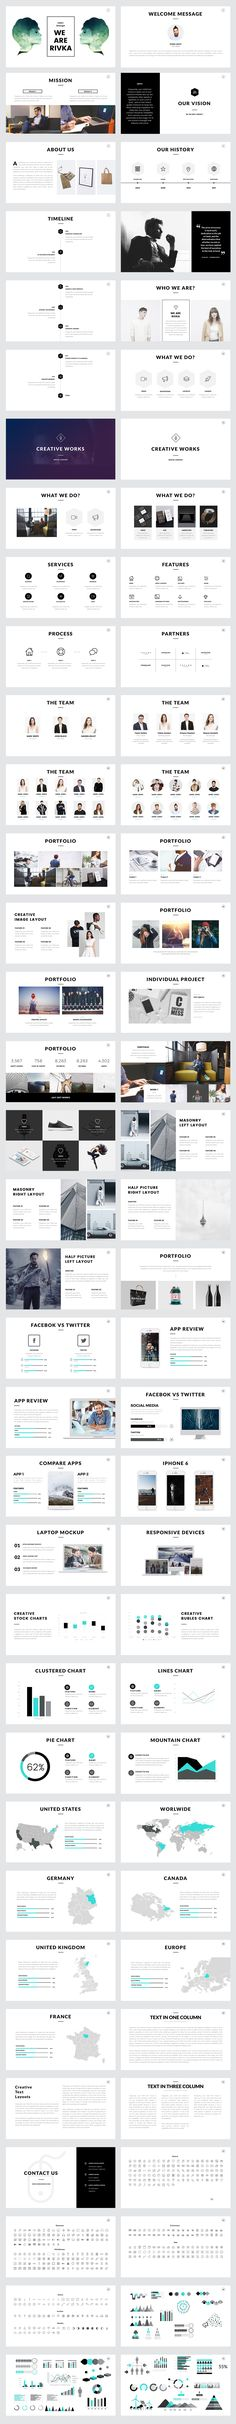 Rivka Minimal Powerpoint Template by Slidedizer on @creativemarket